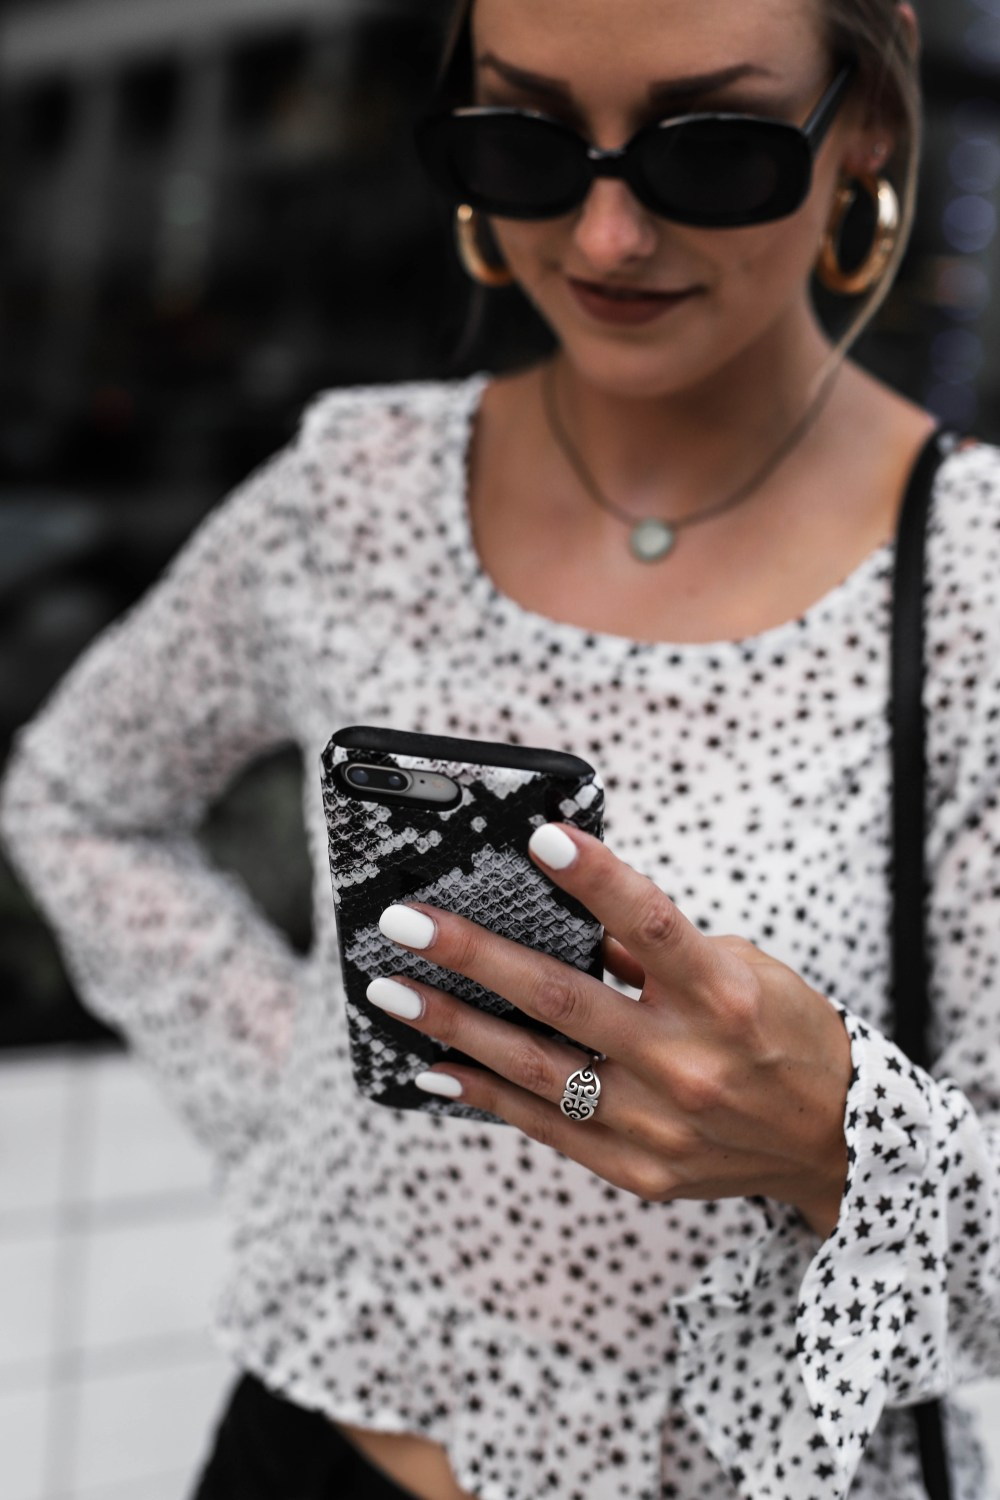 wild fable star top target black and white burga phone case white nails